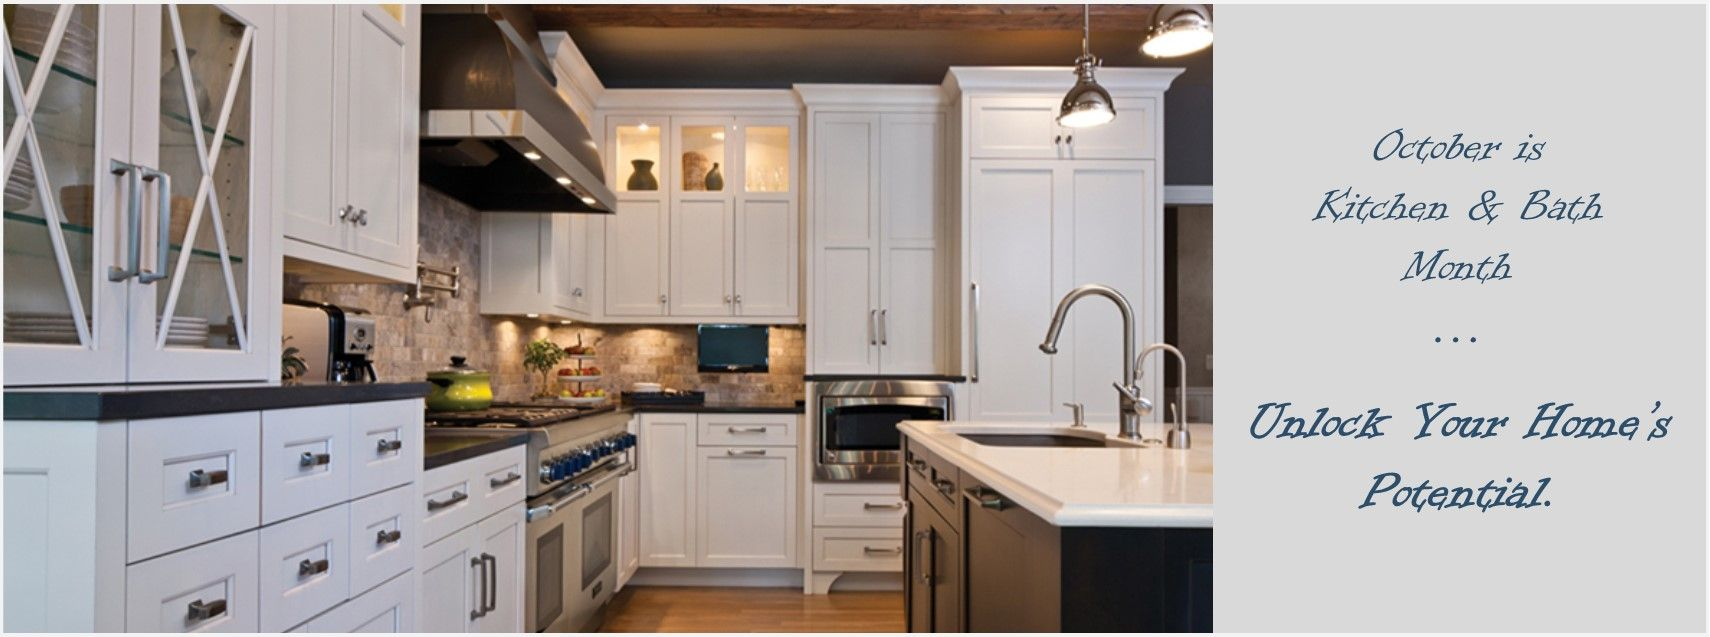 October Is National Kitchen And Bath Month Kitchen And Bath Kitchen Home